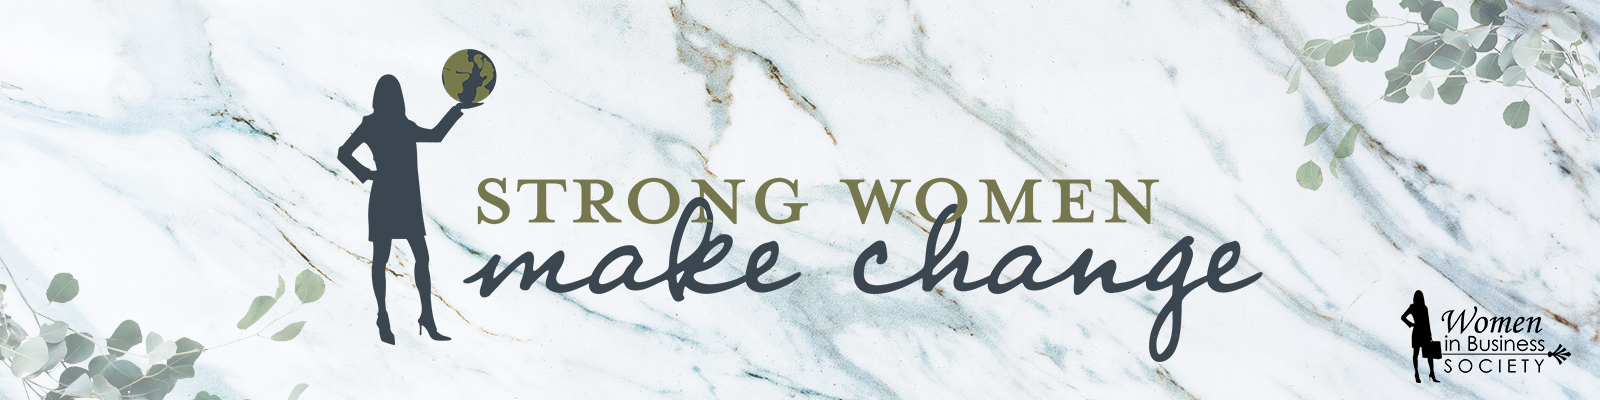 Strong women make change banner with animated shadow of a woman holding the world